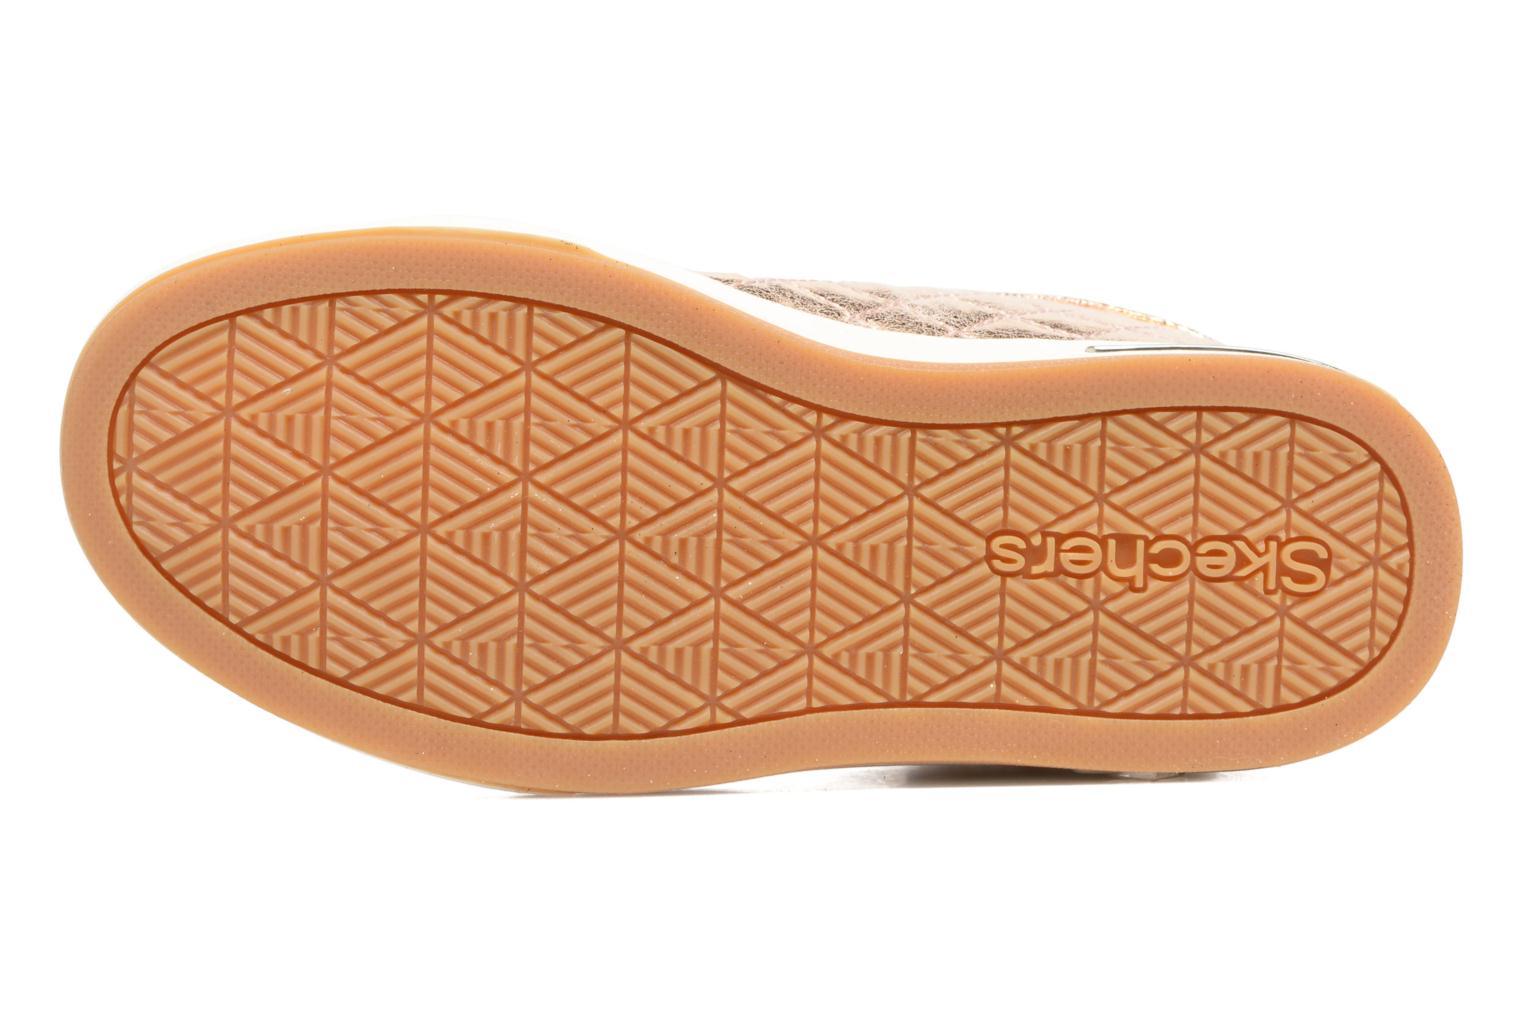 Shoutouts Quilted Crush Or